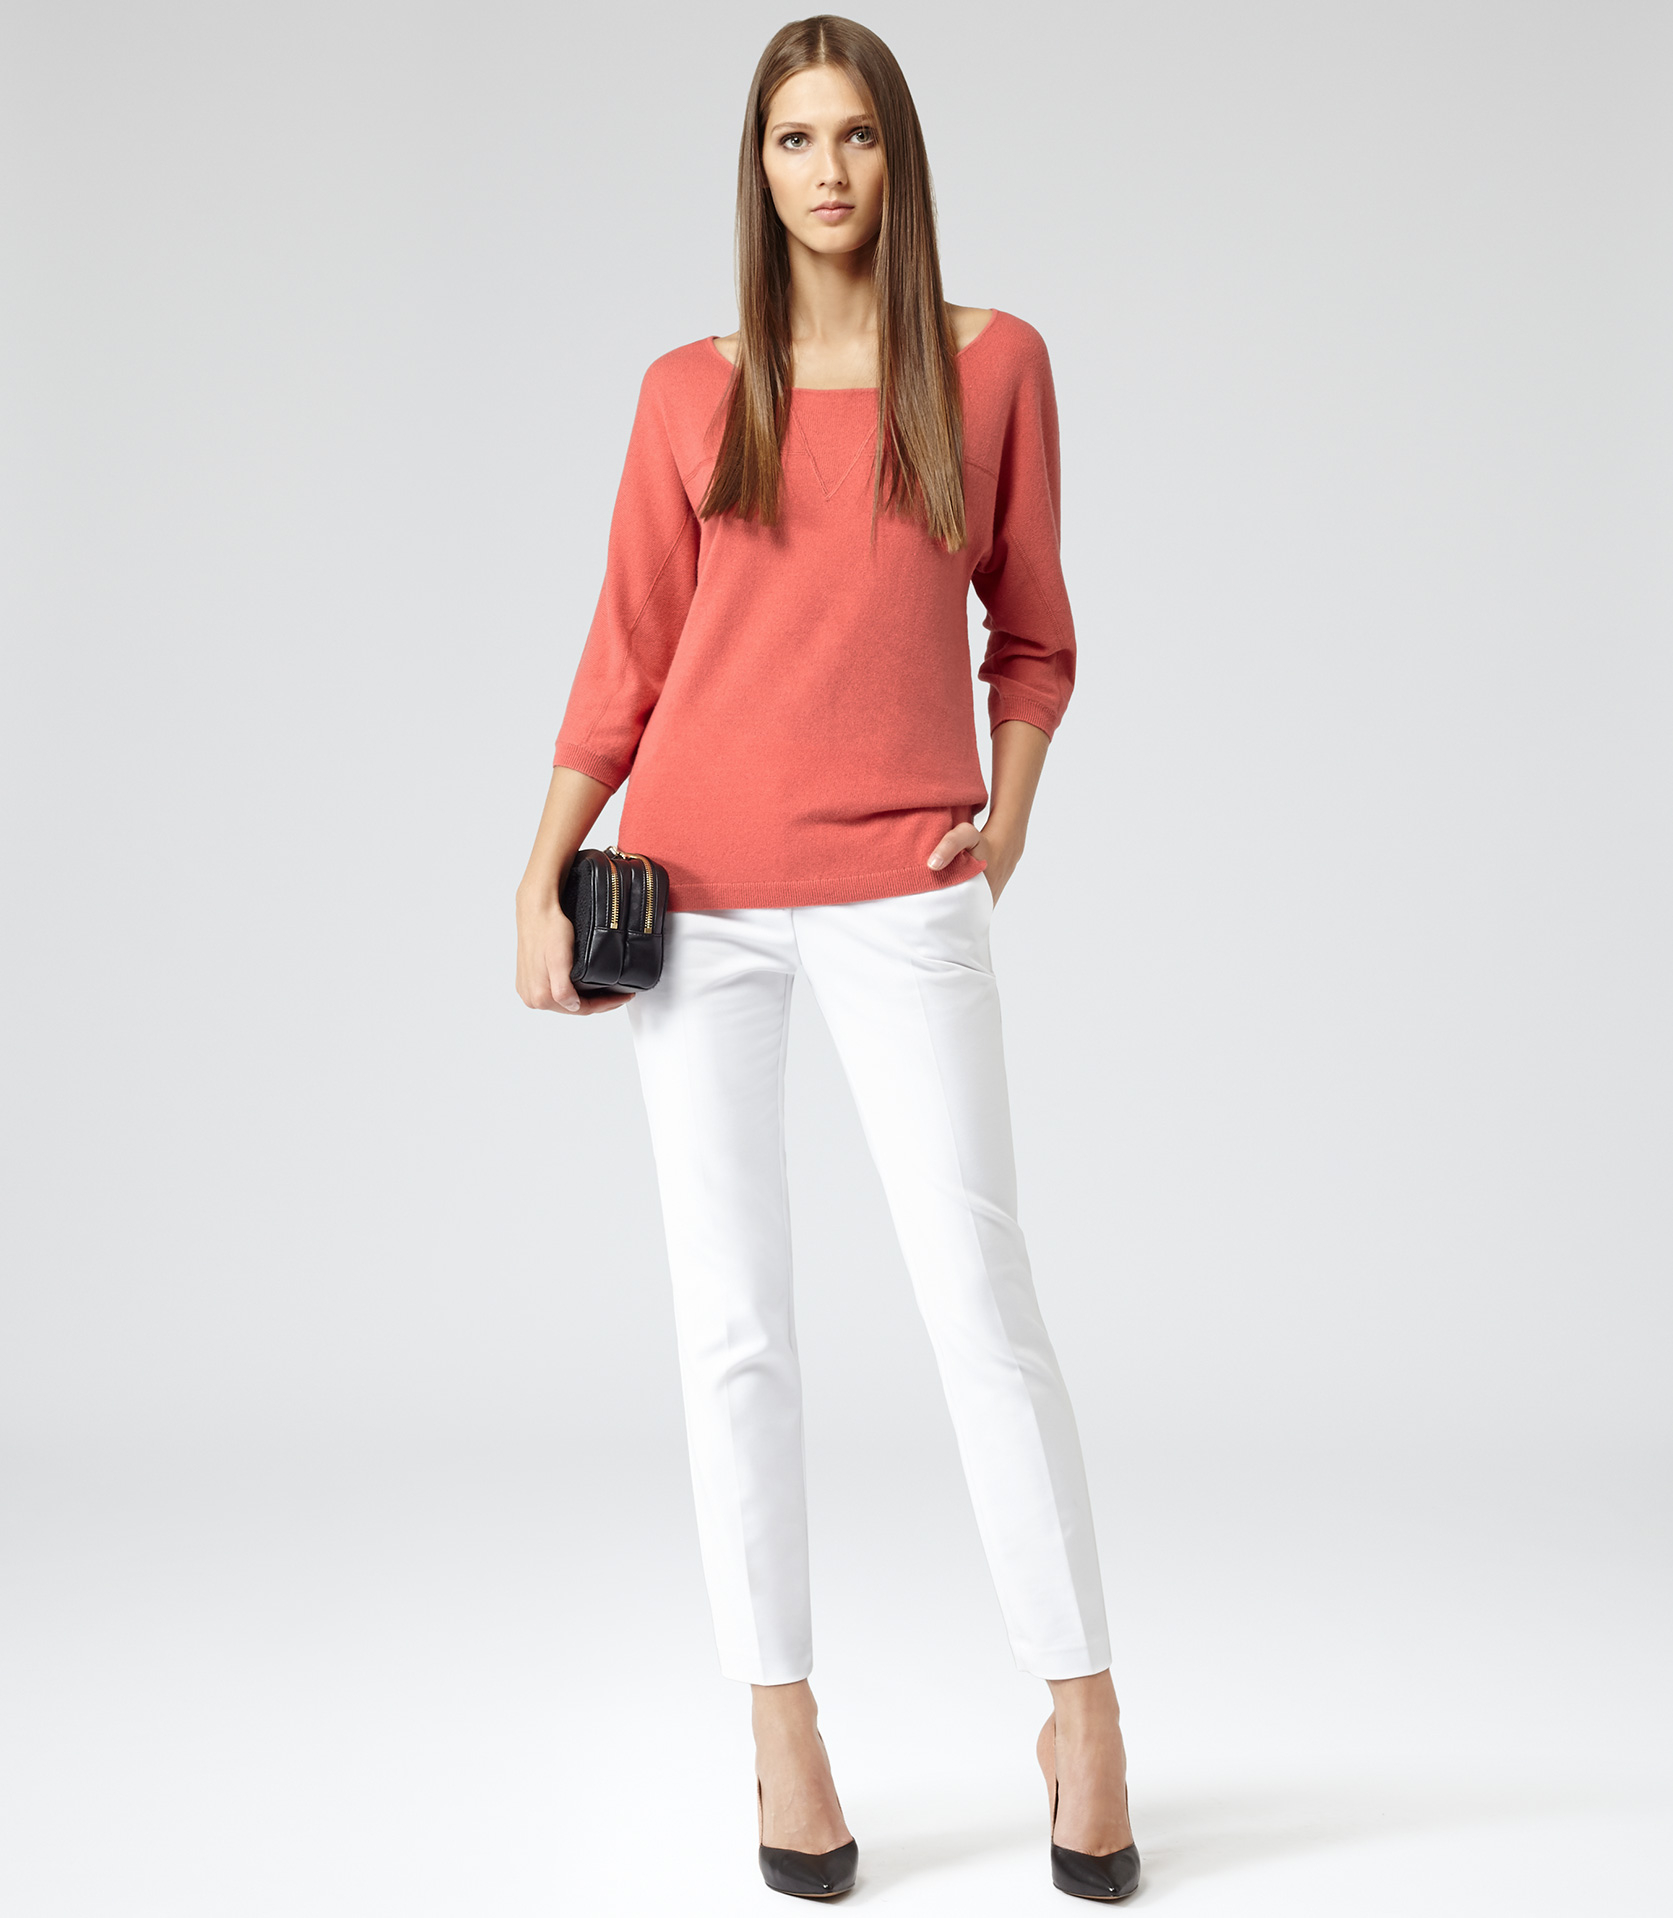 Reiss Calico Oversized Crew Jumper in Red - Lyst